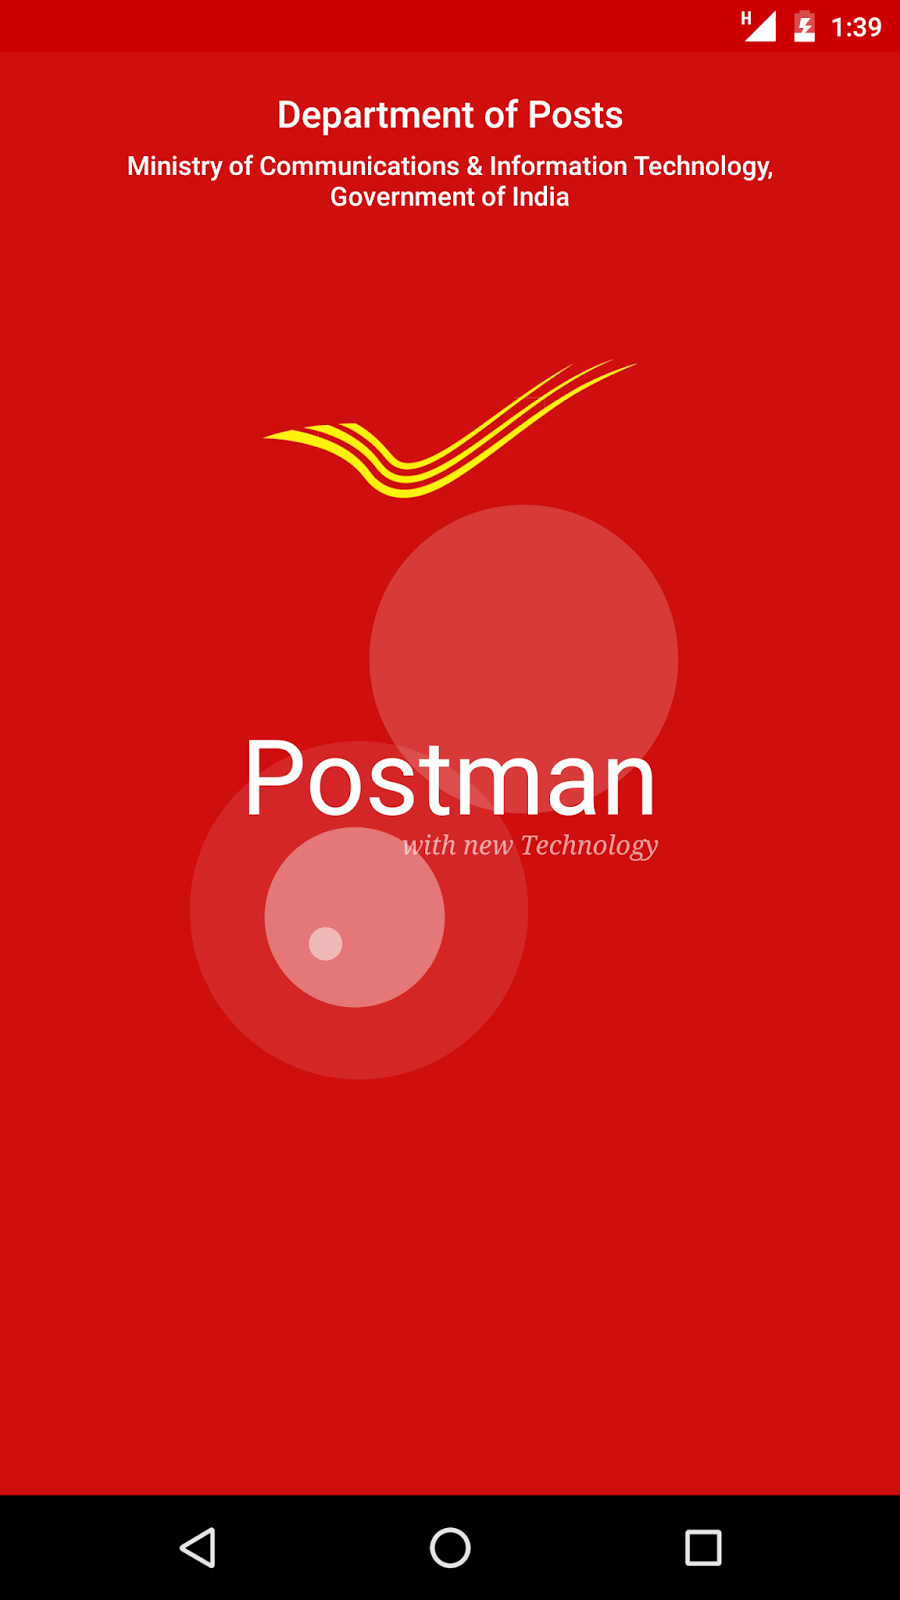 India Post Launched Postman Android Application for Delivery